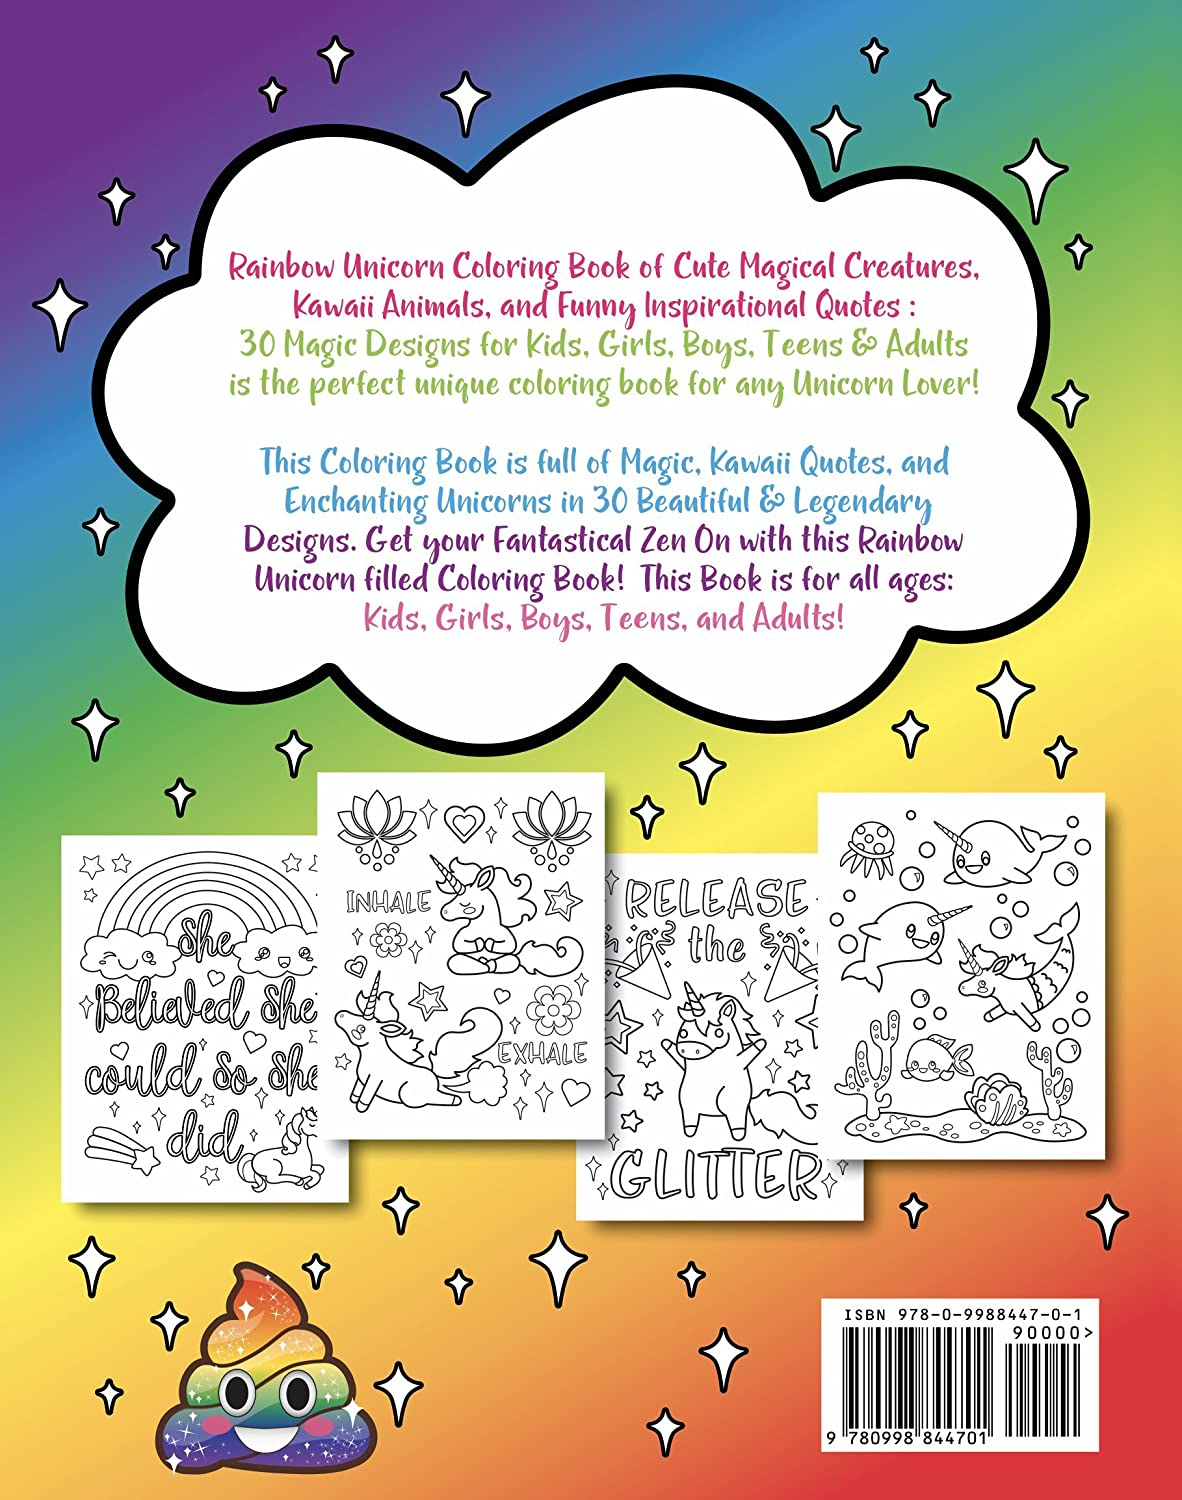 A fun magic coloring book amazon - Amazon Com Rainbow Unicorn Coloring Book Of Cute Magical Creatures Kawaii Animals And Funny Inspirational Quotes 20 Sargent Art Firm Brush Tip Marker